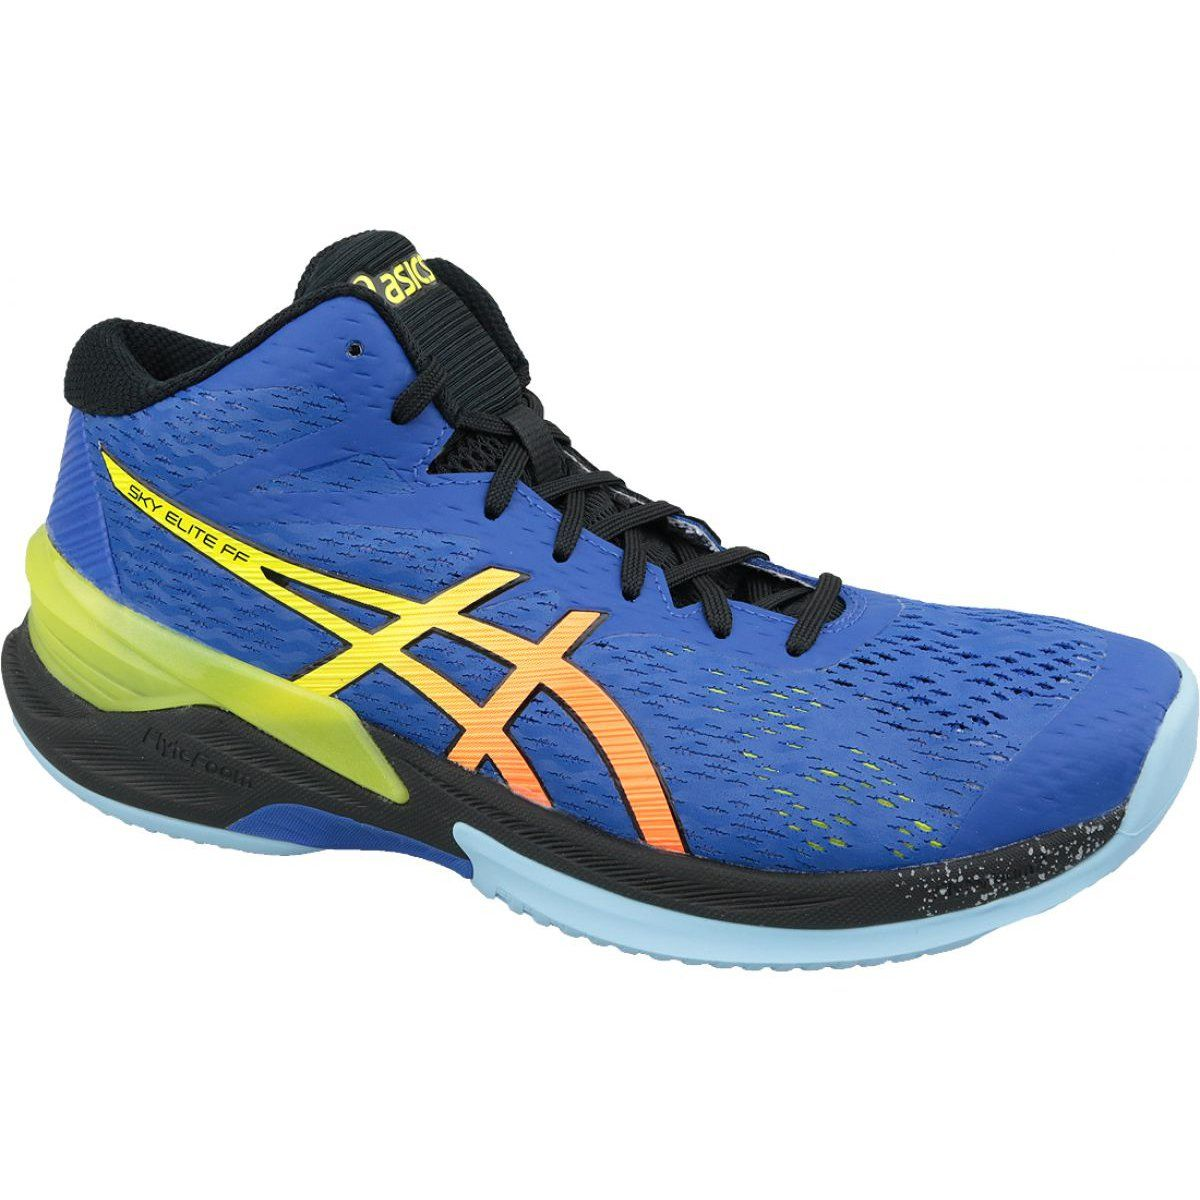 Asics Sky Elite Ff Mt M 1051a032 400 Volleyball Shoes Blue Blue Volleyball Shoes Mens Volleyball Shoes Blue Shoes